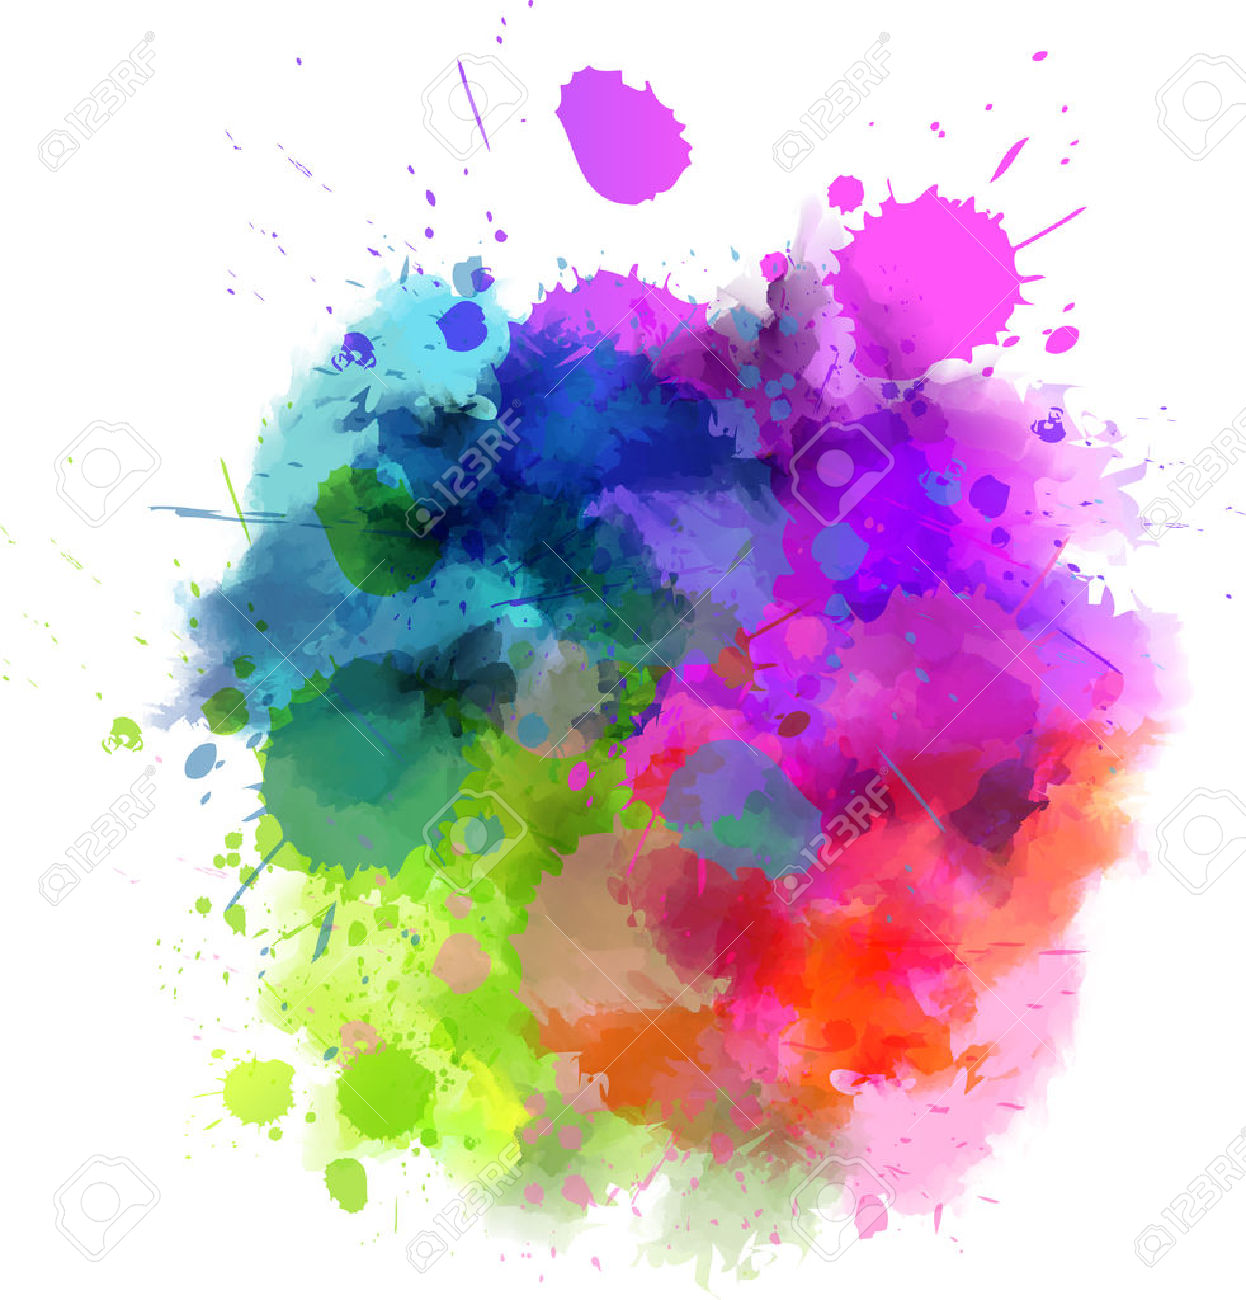 Splatter Frame Stock Vector Illustration And Royalty Free Splatter.